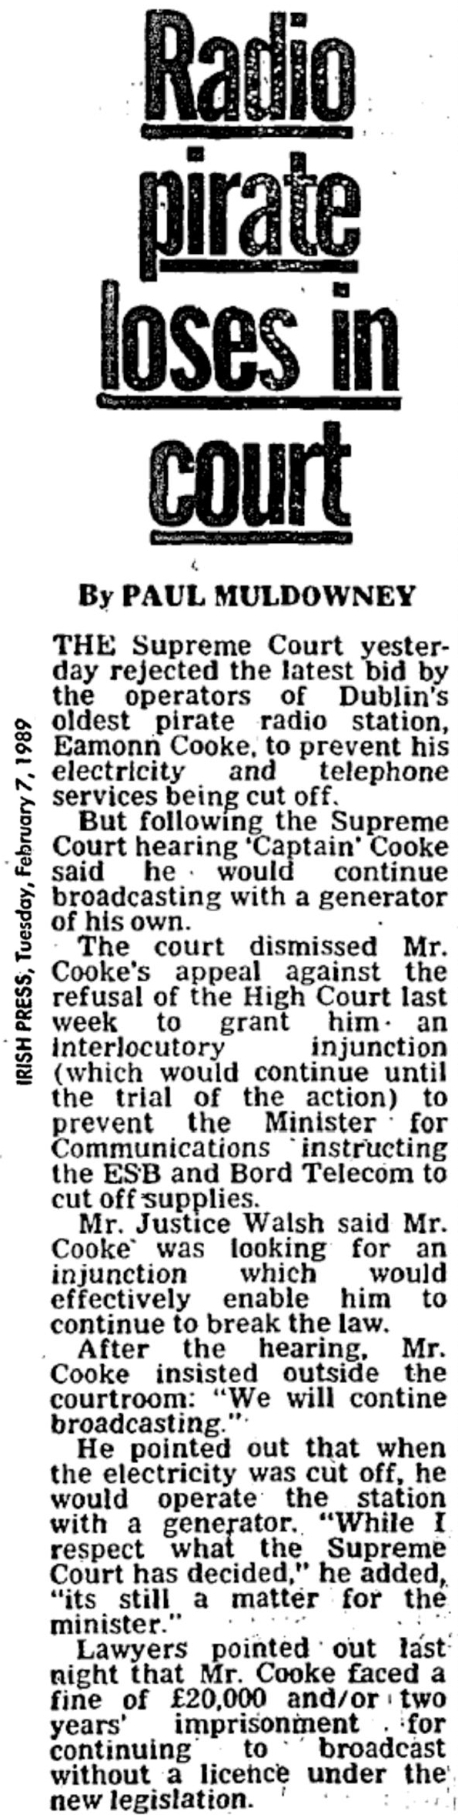 Radio pirate loses in court was a headline from The Irish Press dated February 7th 1989.